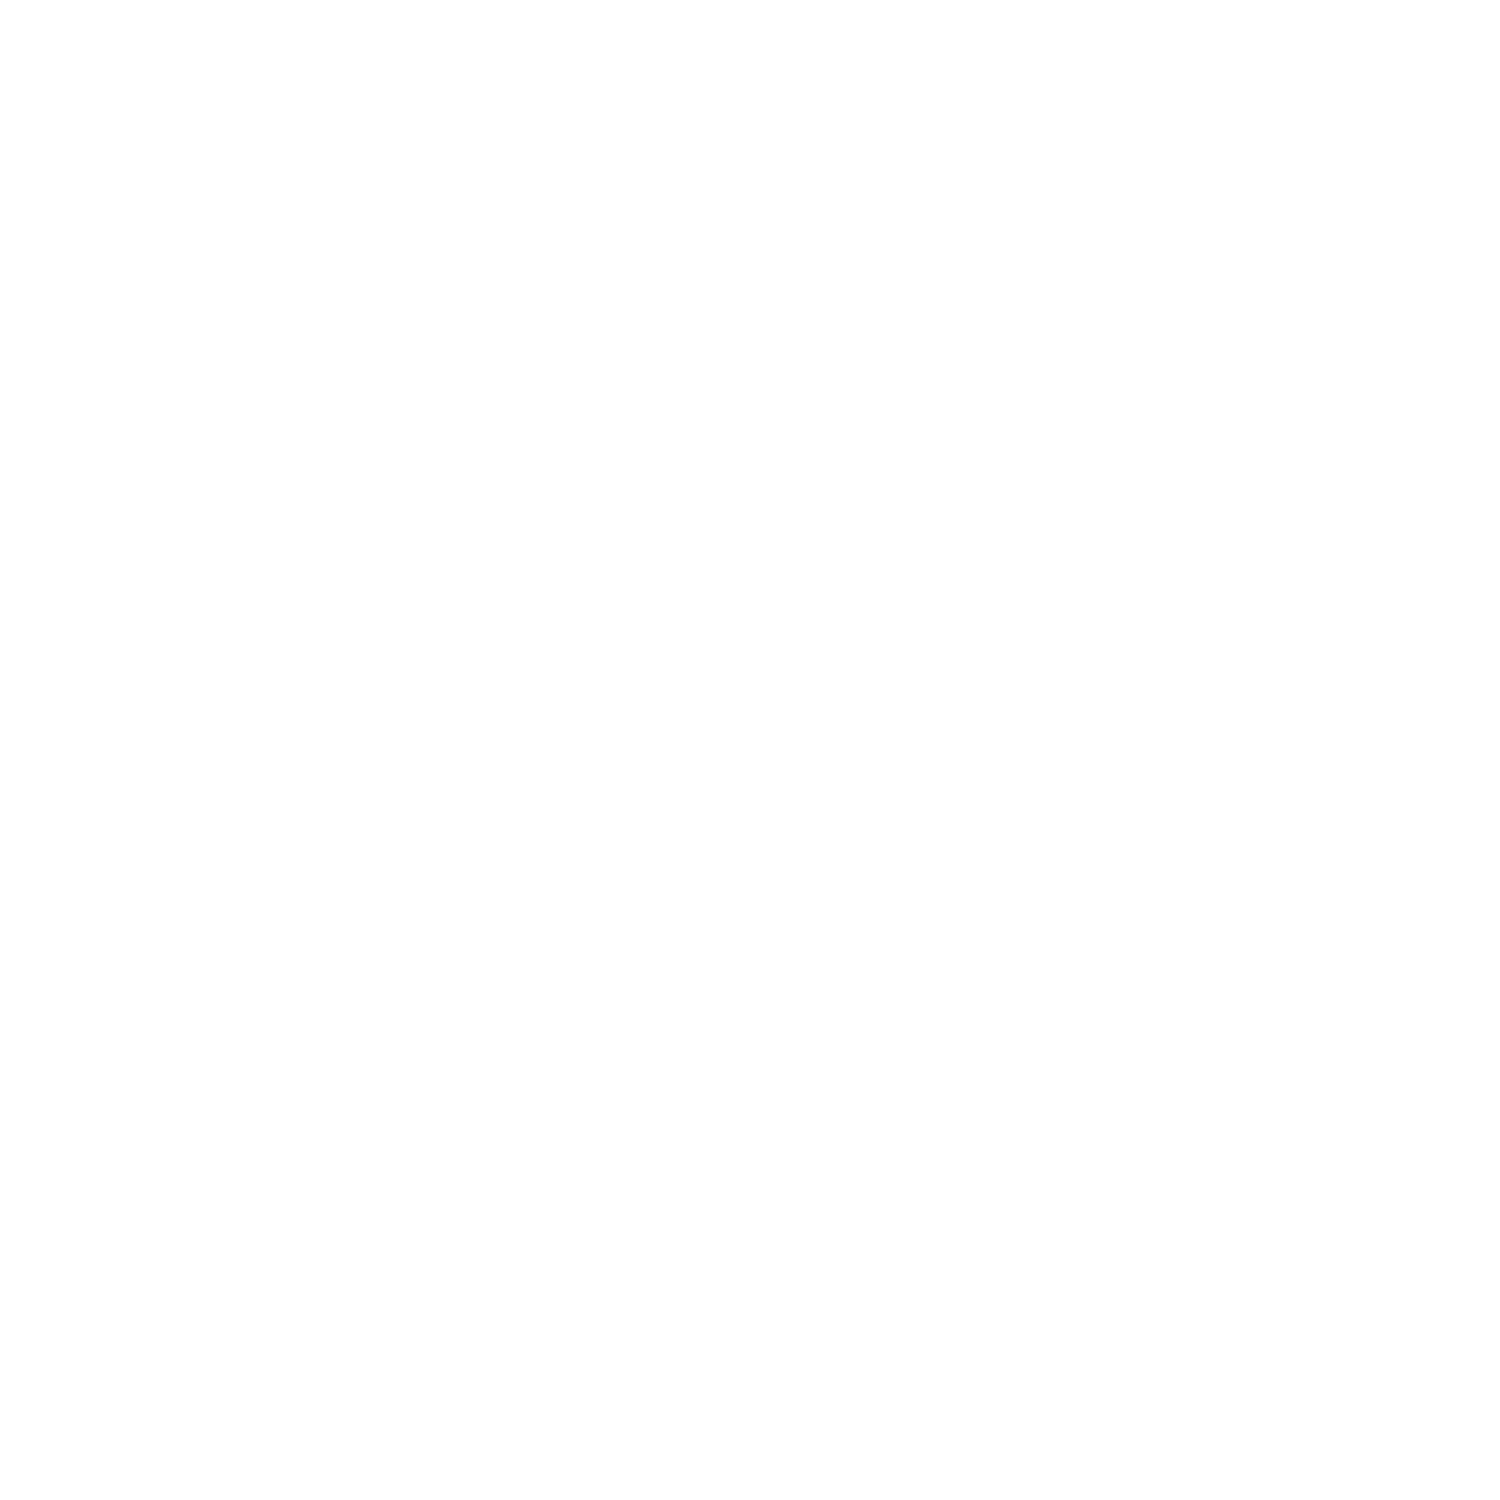 Produced By Justin Inc.